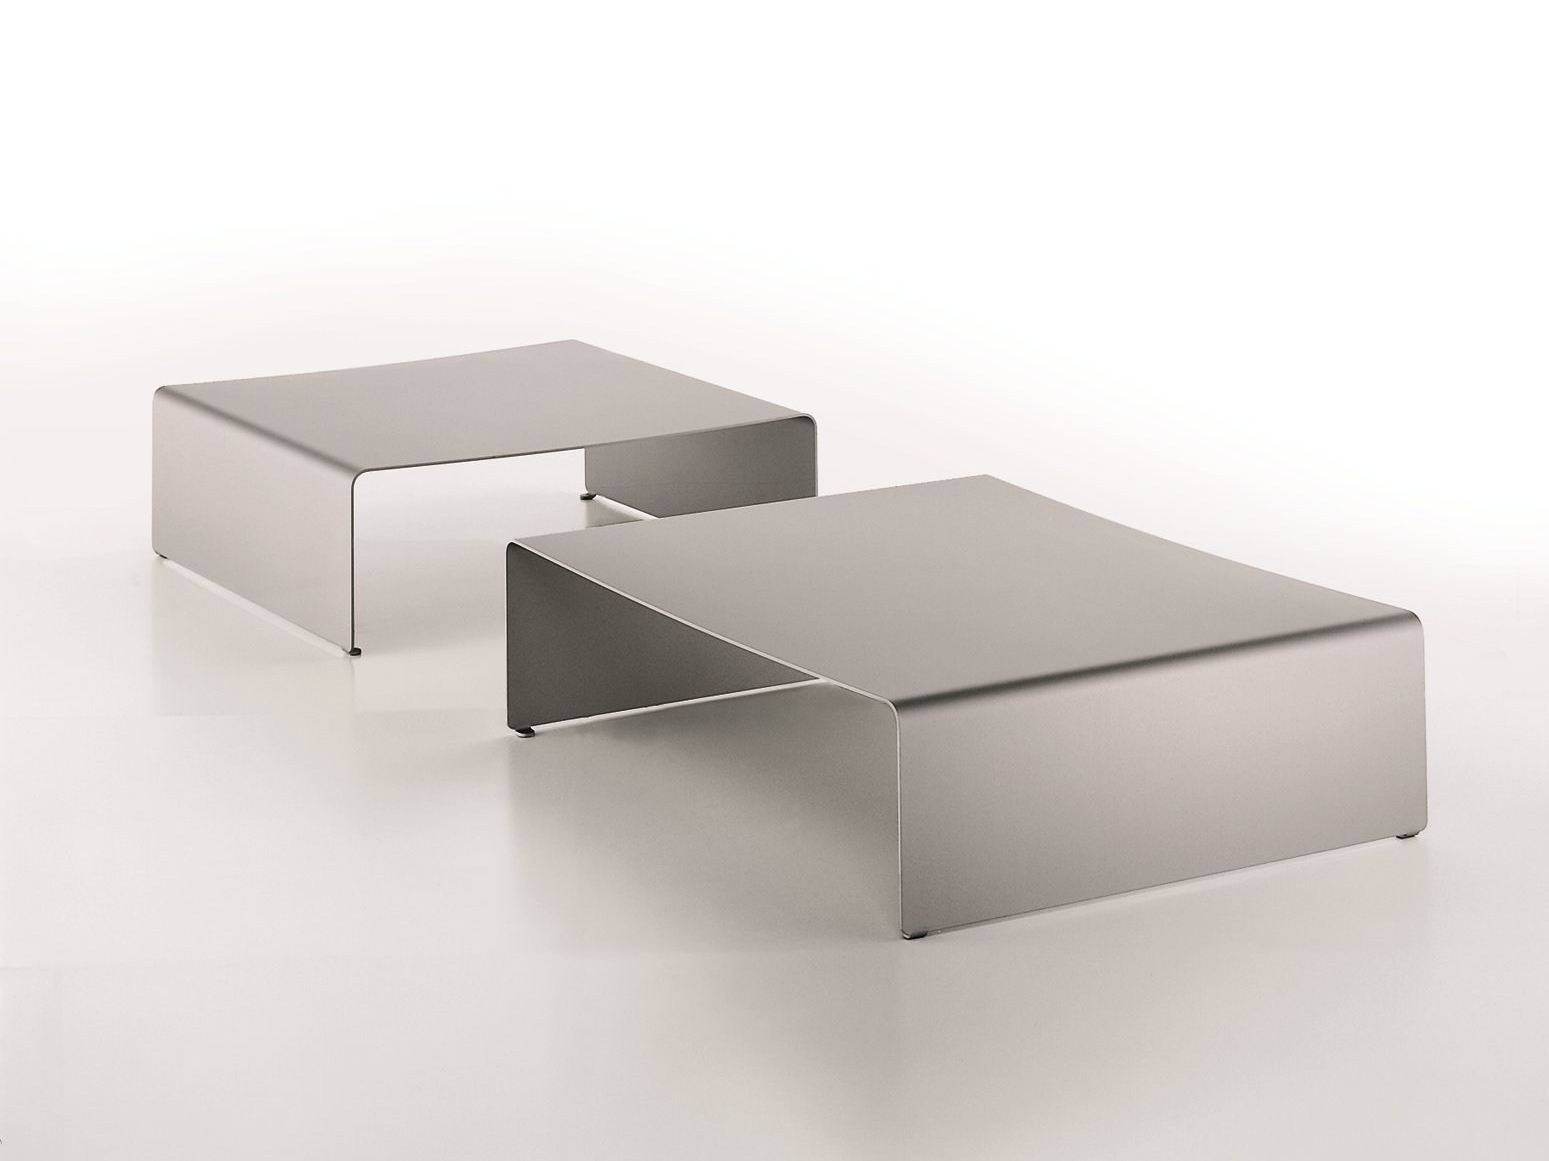 Coffee Tables | Tables And Chairs | Archiproducts in Aluminium Coffee Tables (Image 11 of 30)